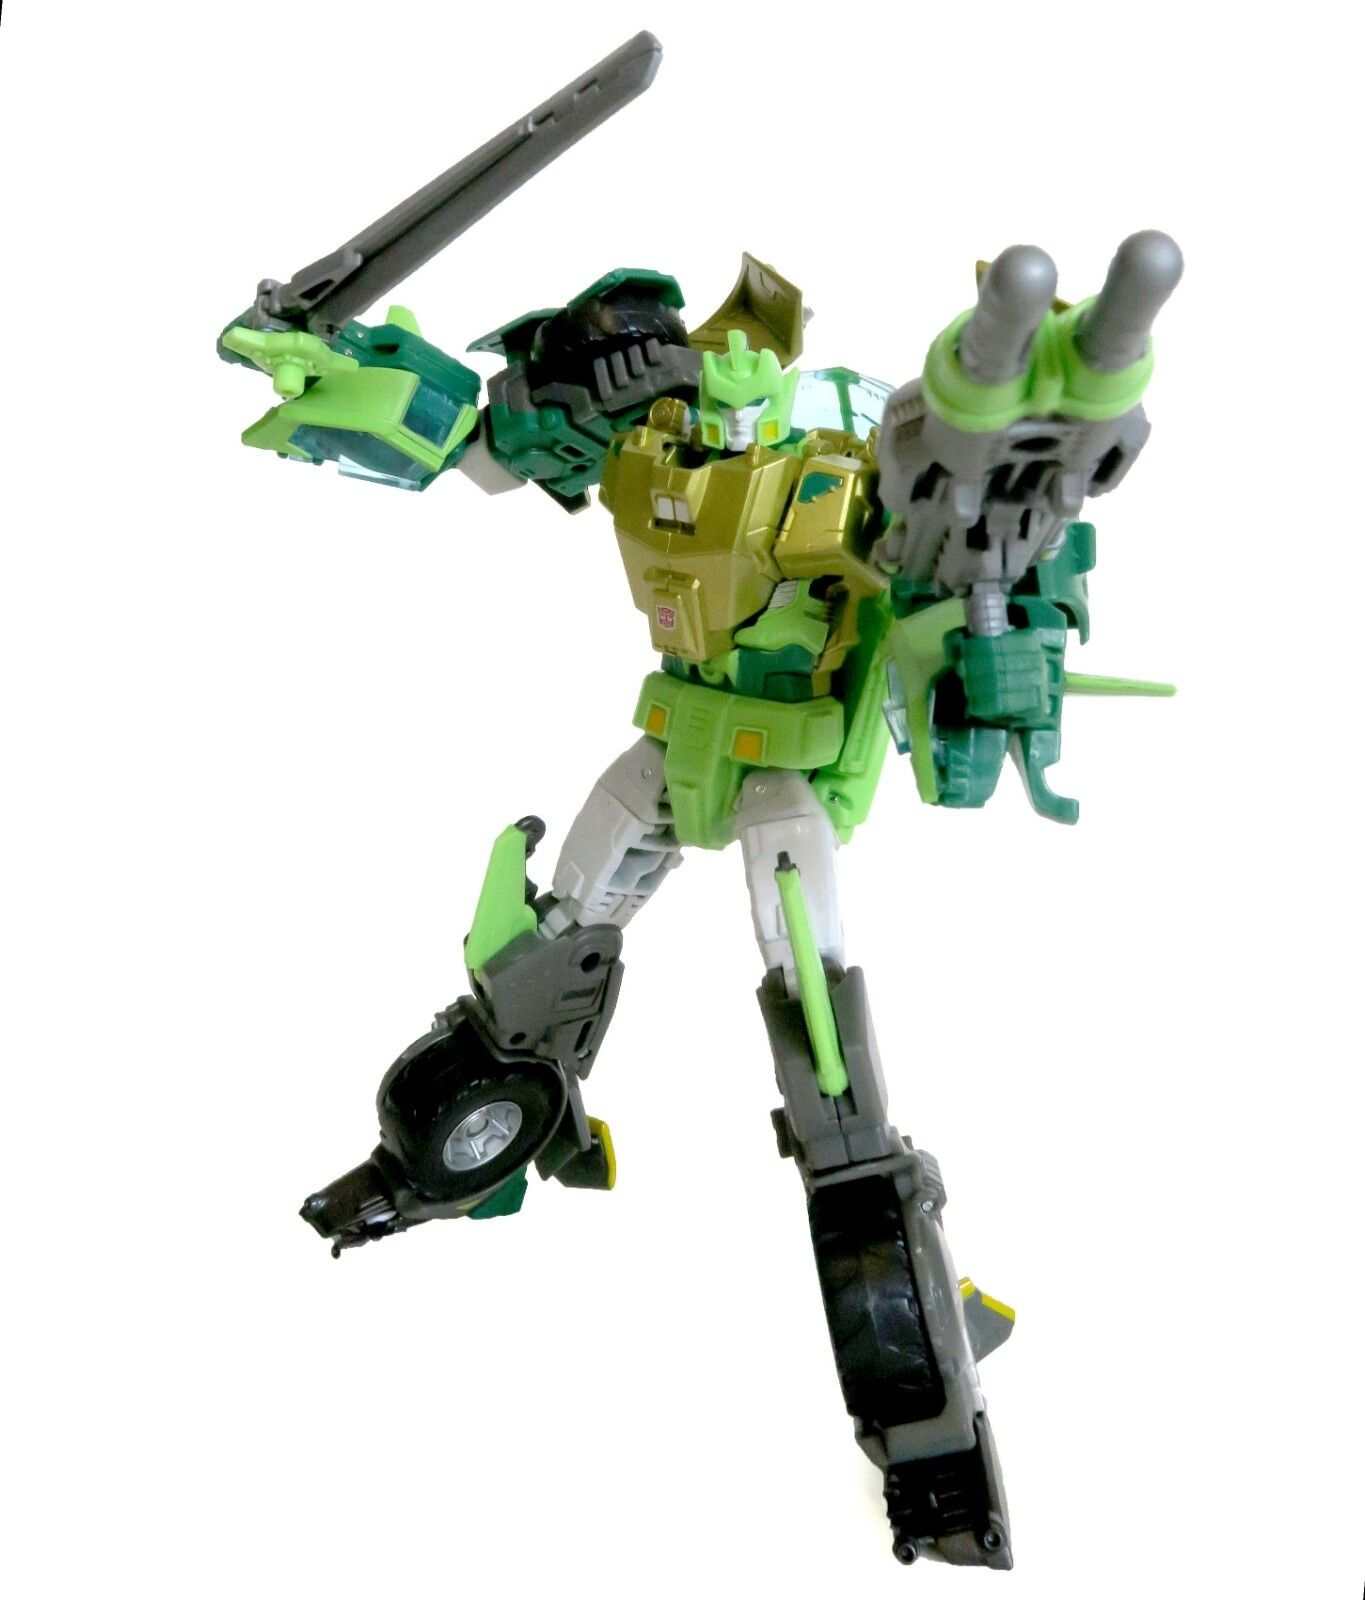 Transformers Generations Platinum Edition Triple Changer Voyager Springer